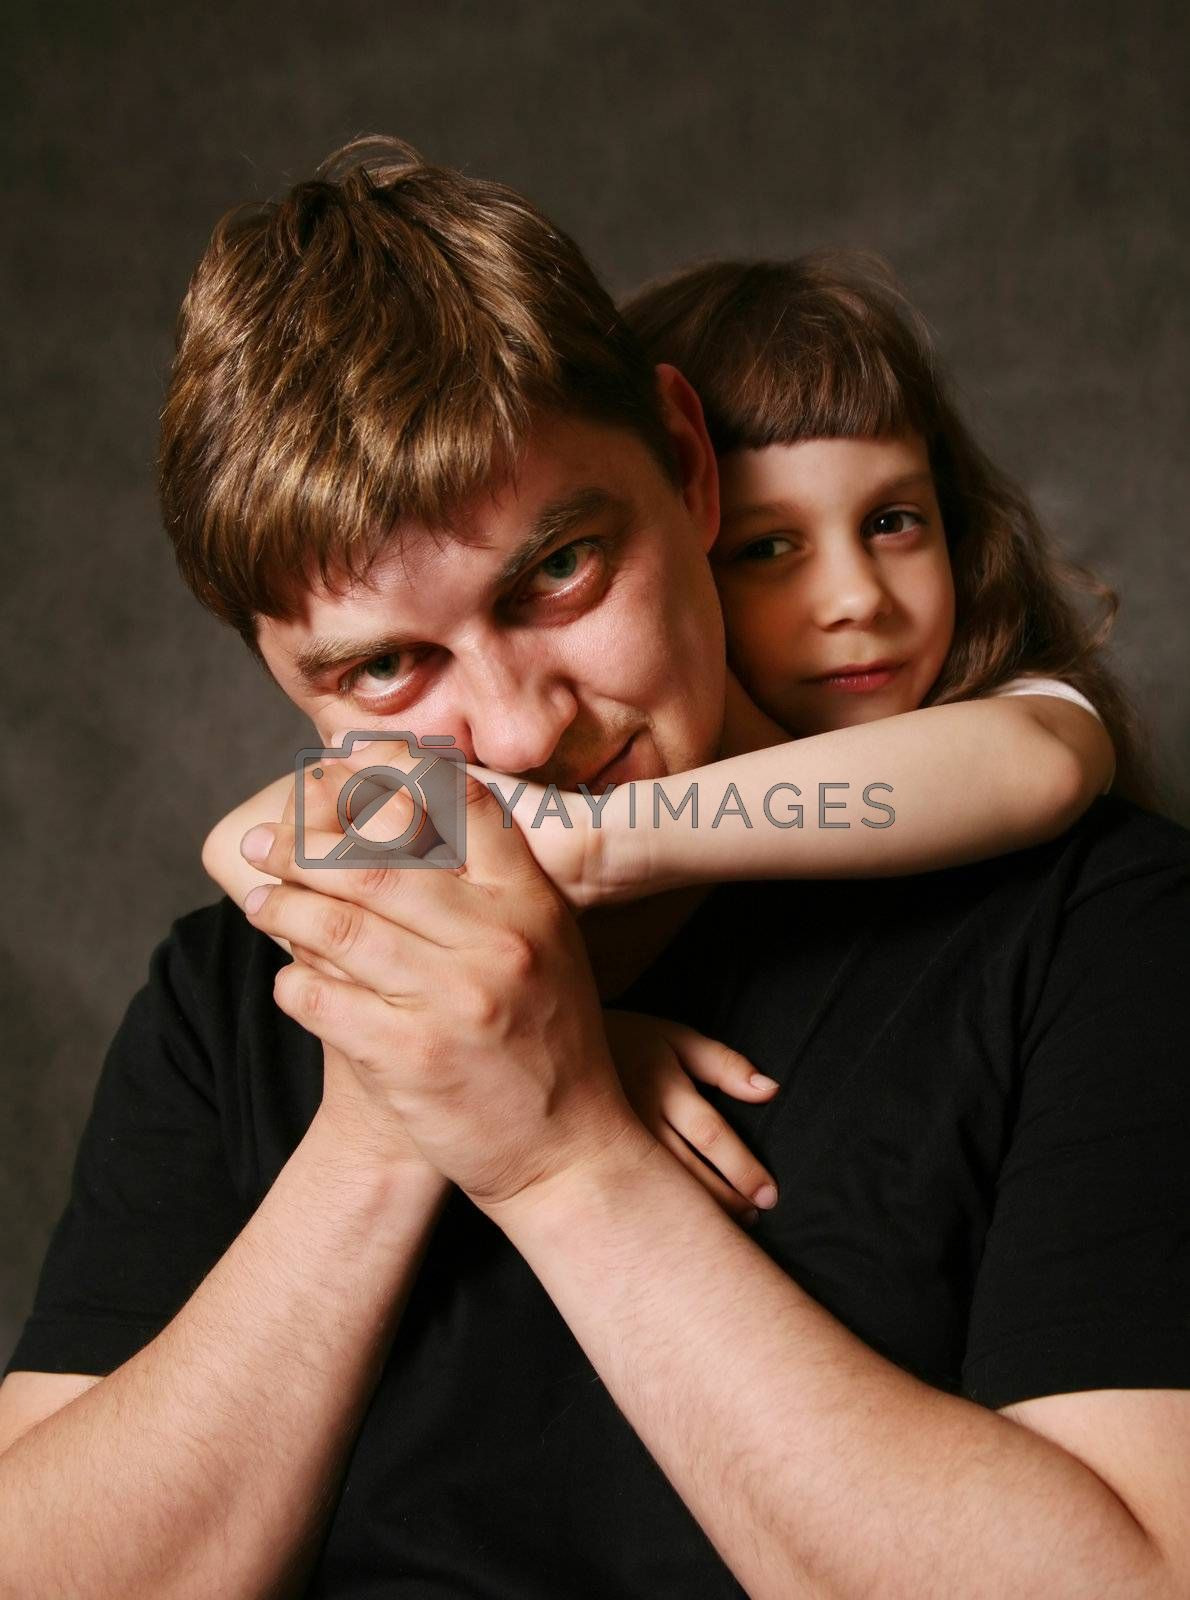 Double portrait. The daughter embraces the father